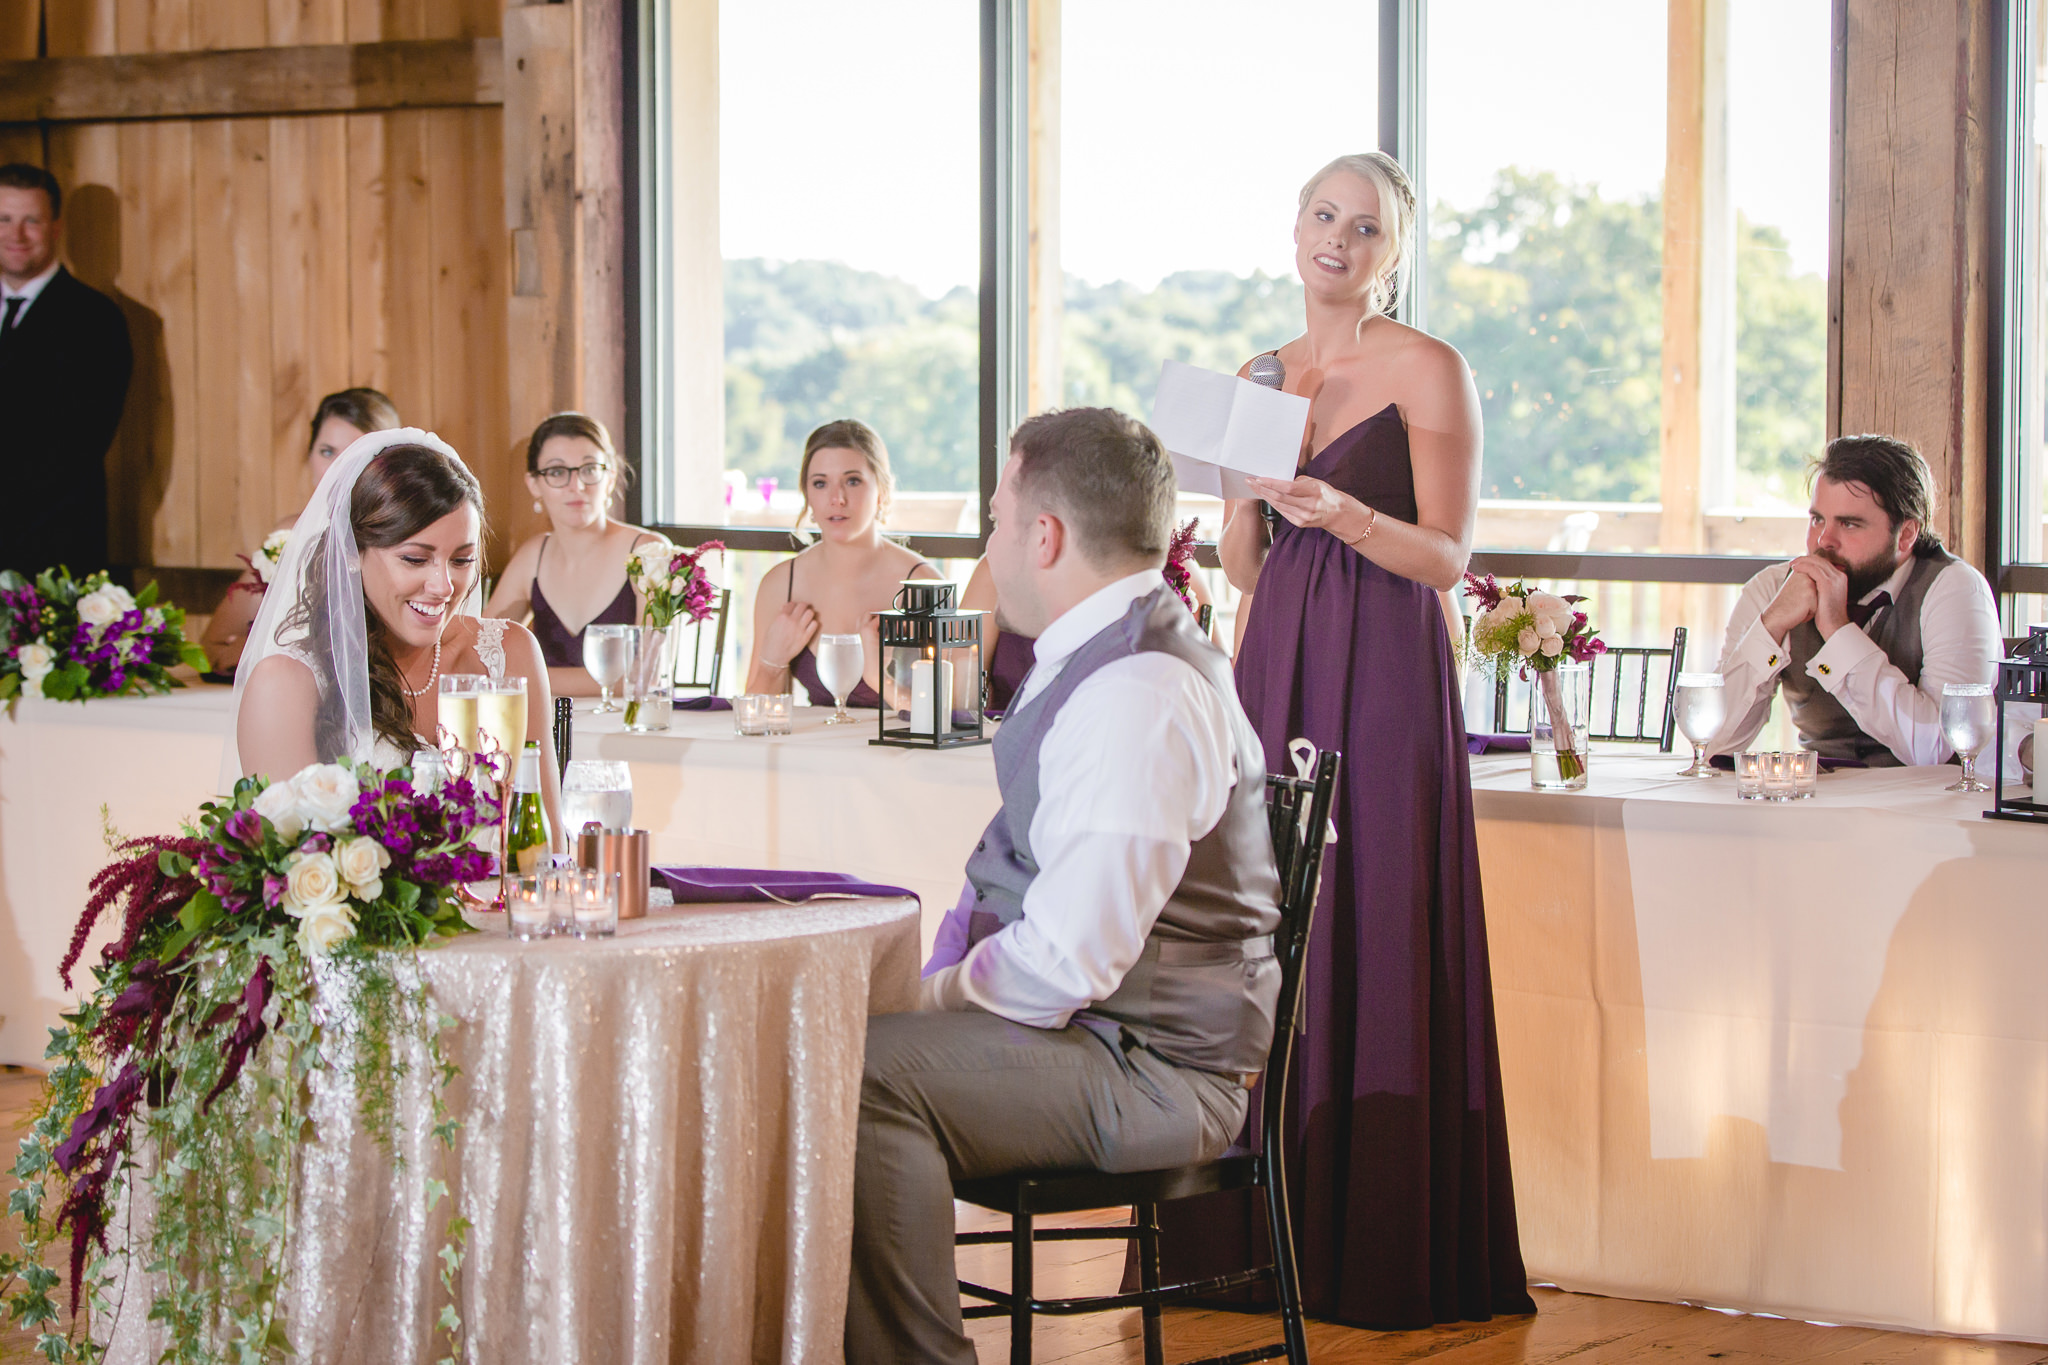 Maid of honor gives a speech at a White Barn wedding reception